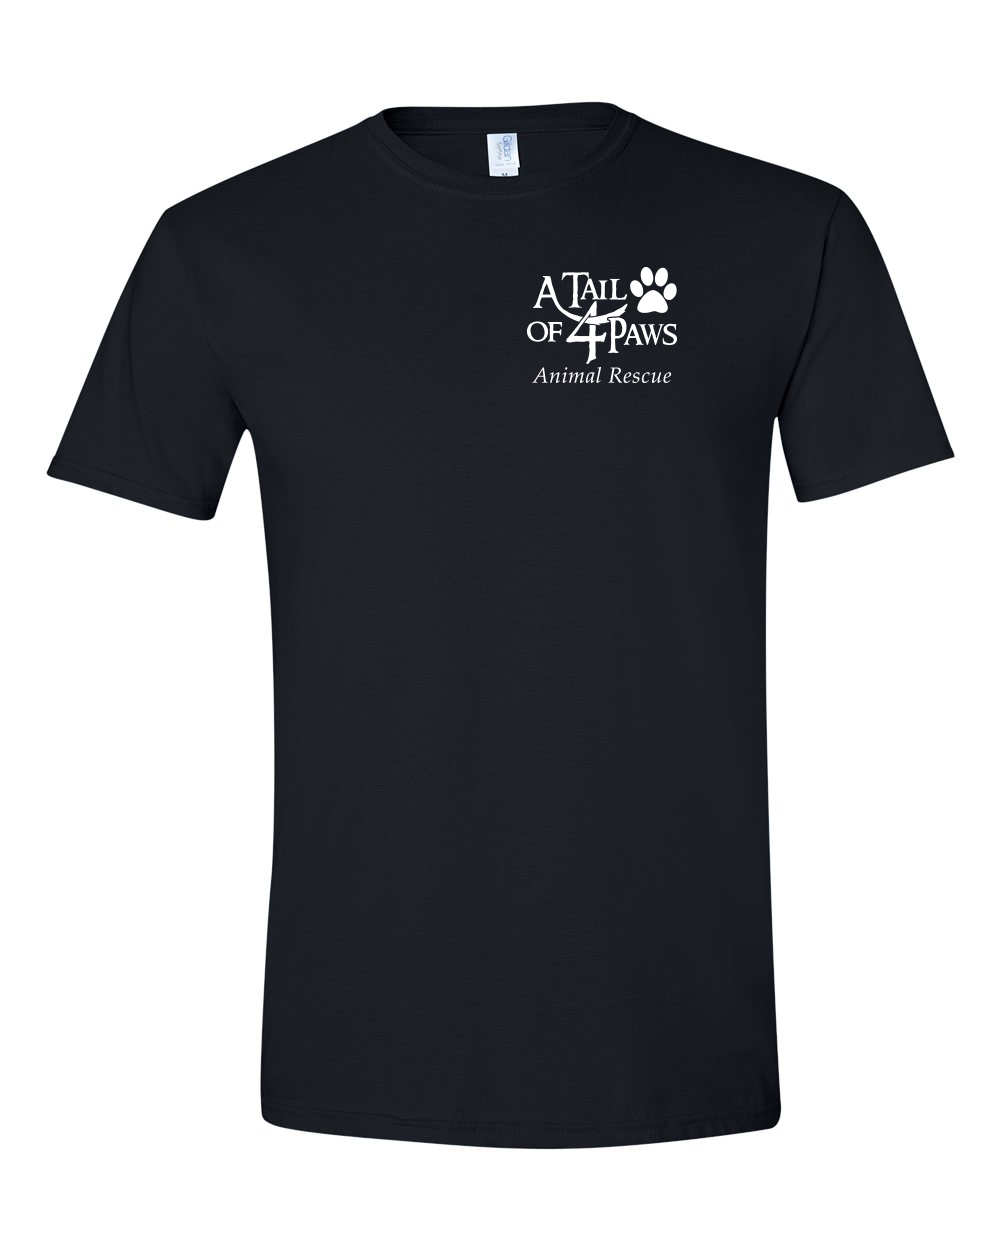 Front of Shirt Black